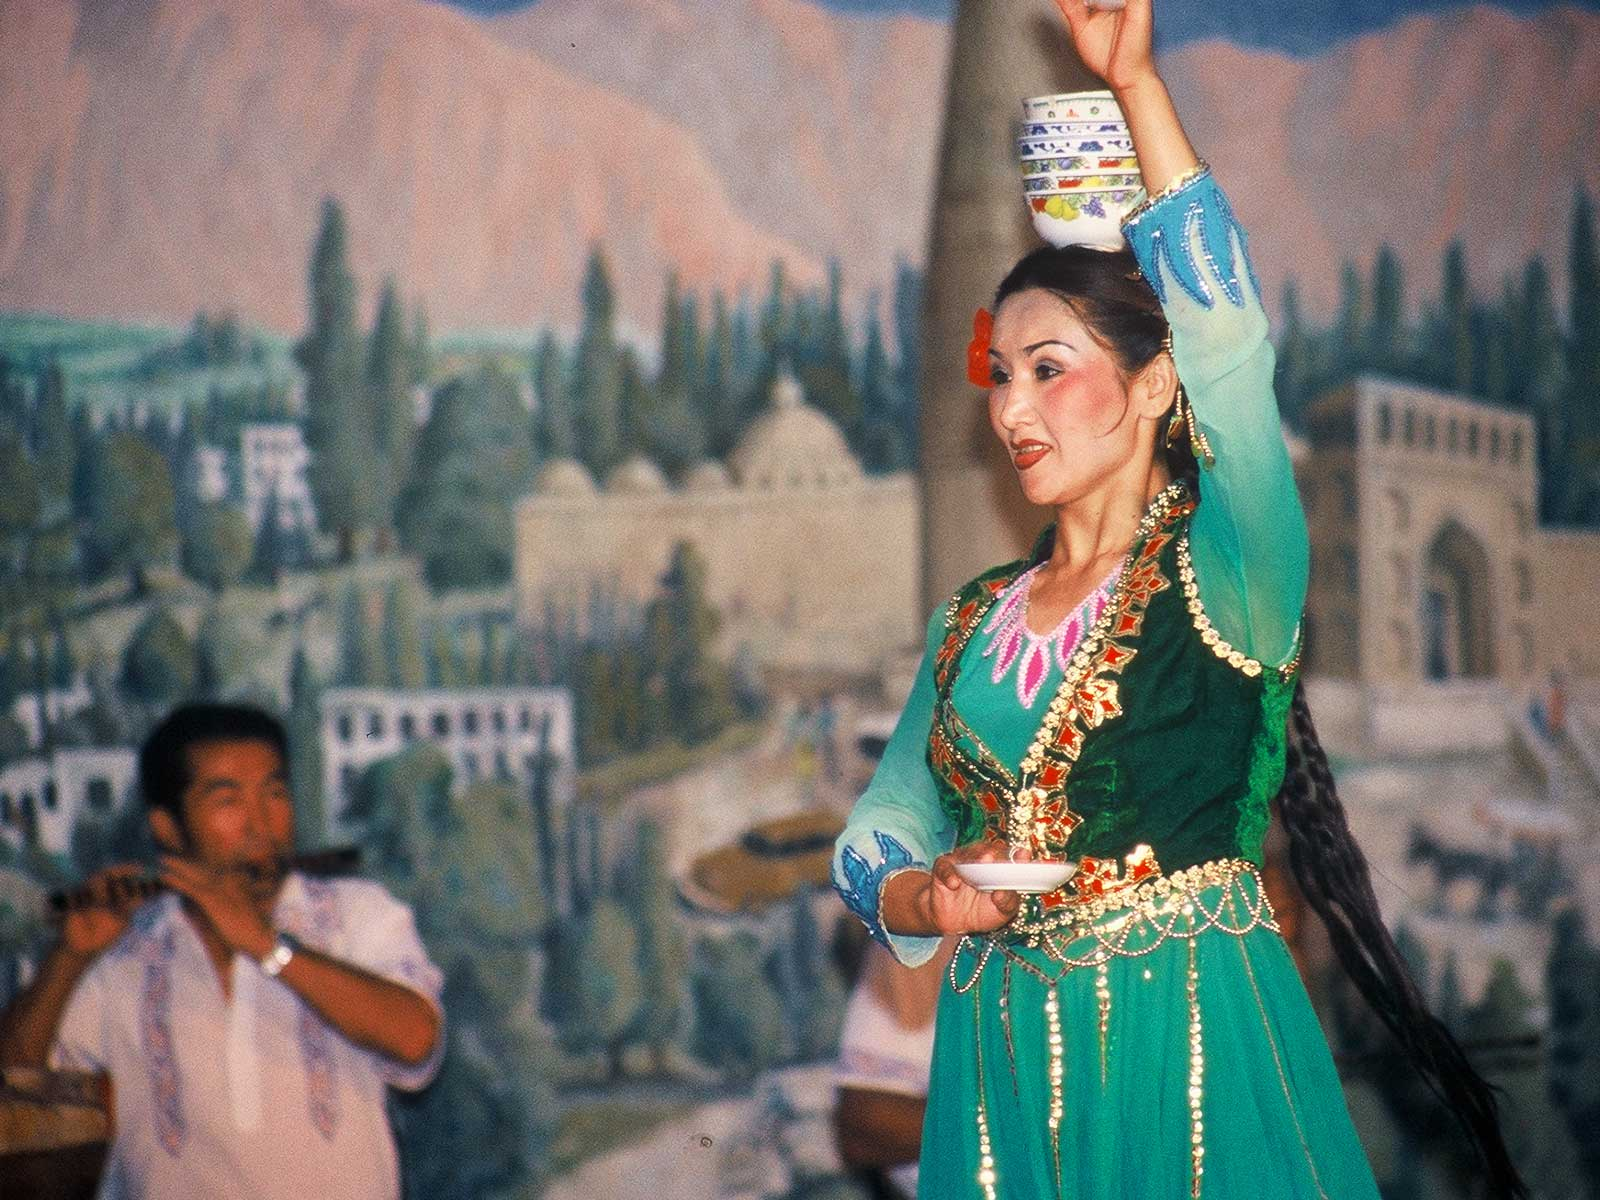 Eastern Civilization - Uyghur dancer - Turpan - Xinjiang - Silk Road Journal - Steven Andrew Martin - 2001